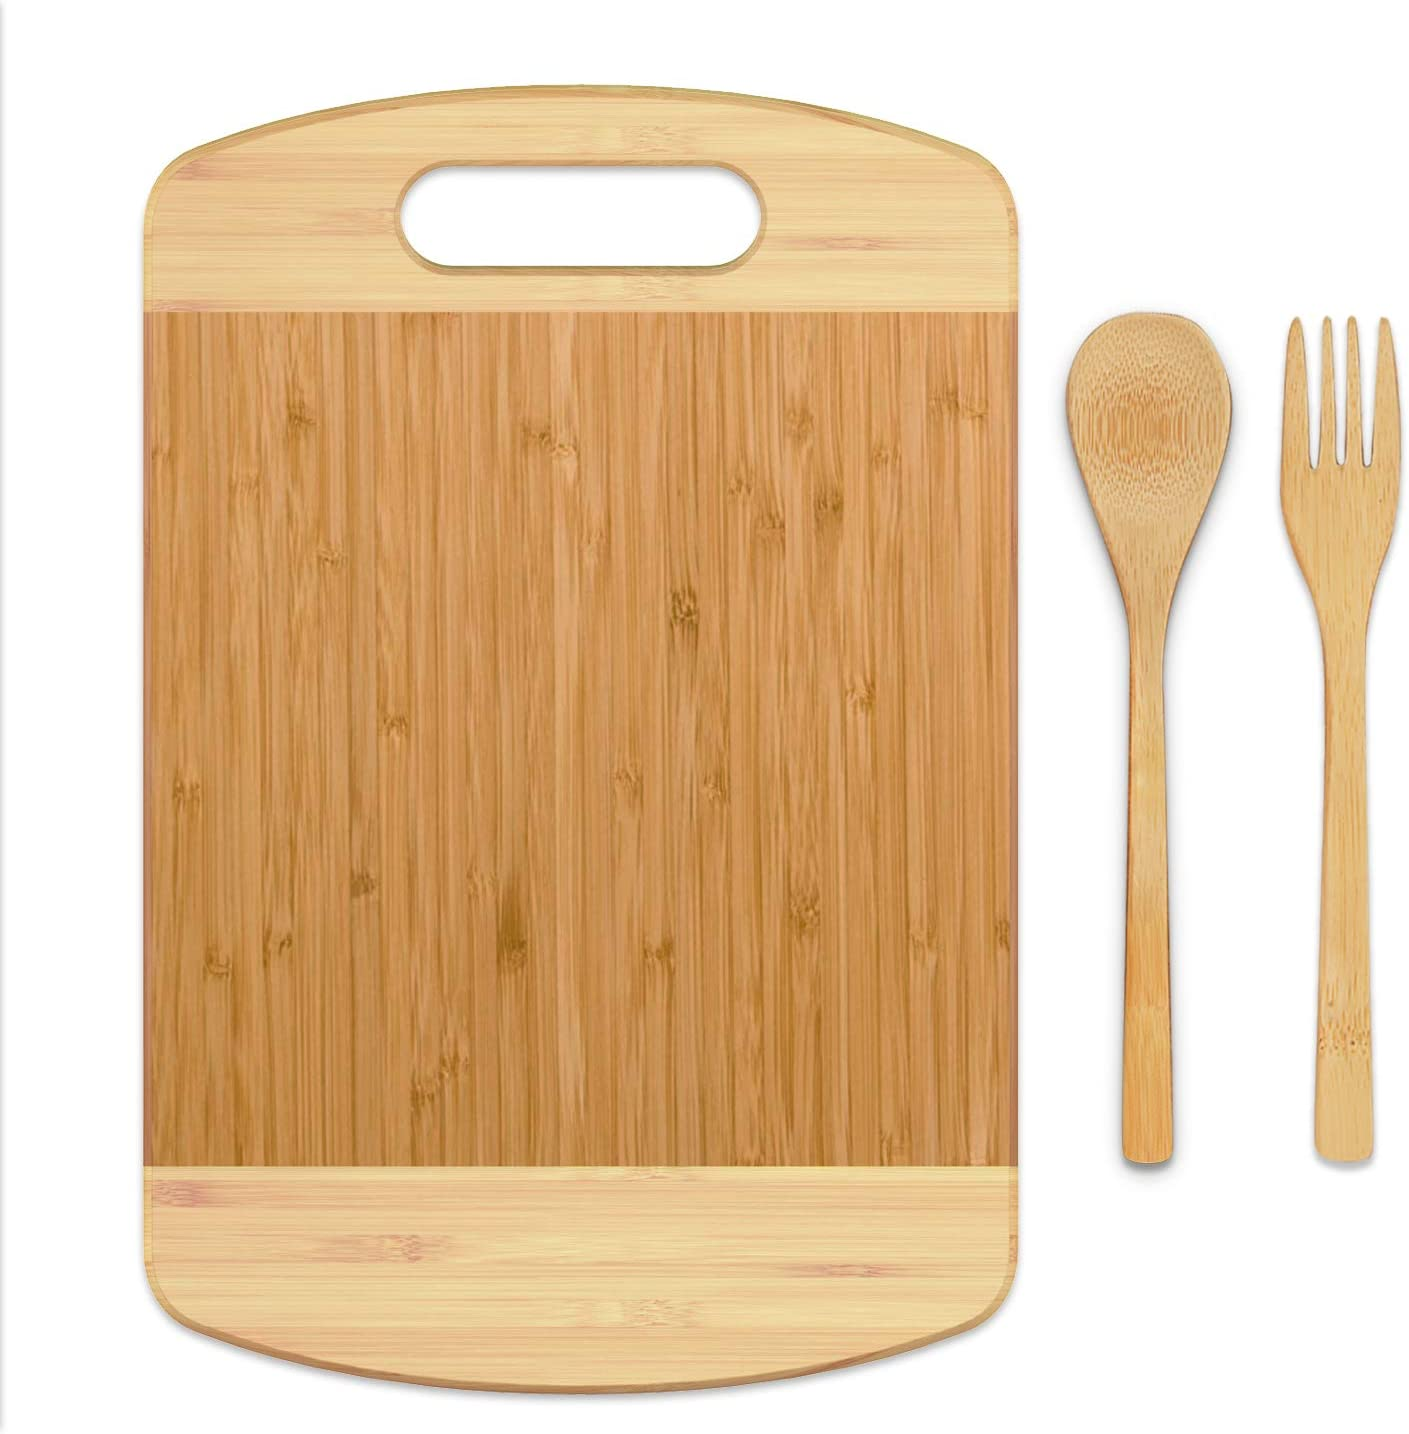 BamBoo Cutting Board - 3 Chopping Max 60% OFF Small Piece Eco-Friendly Free Shipping New Set